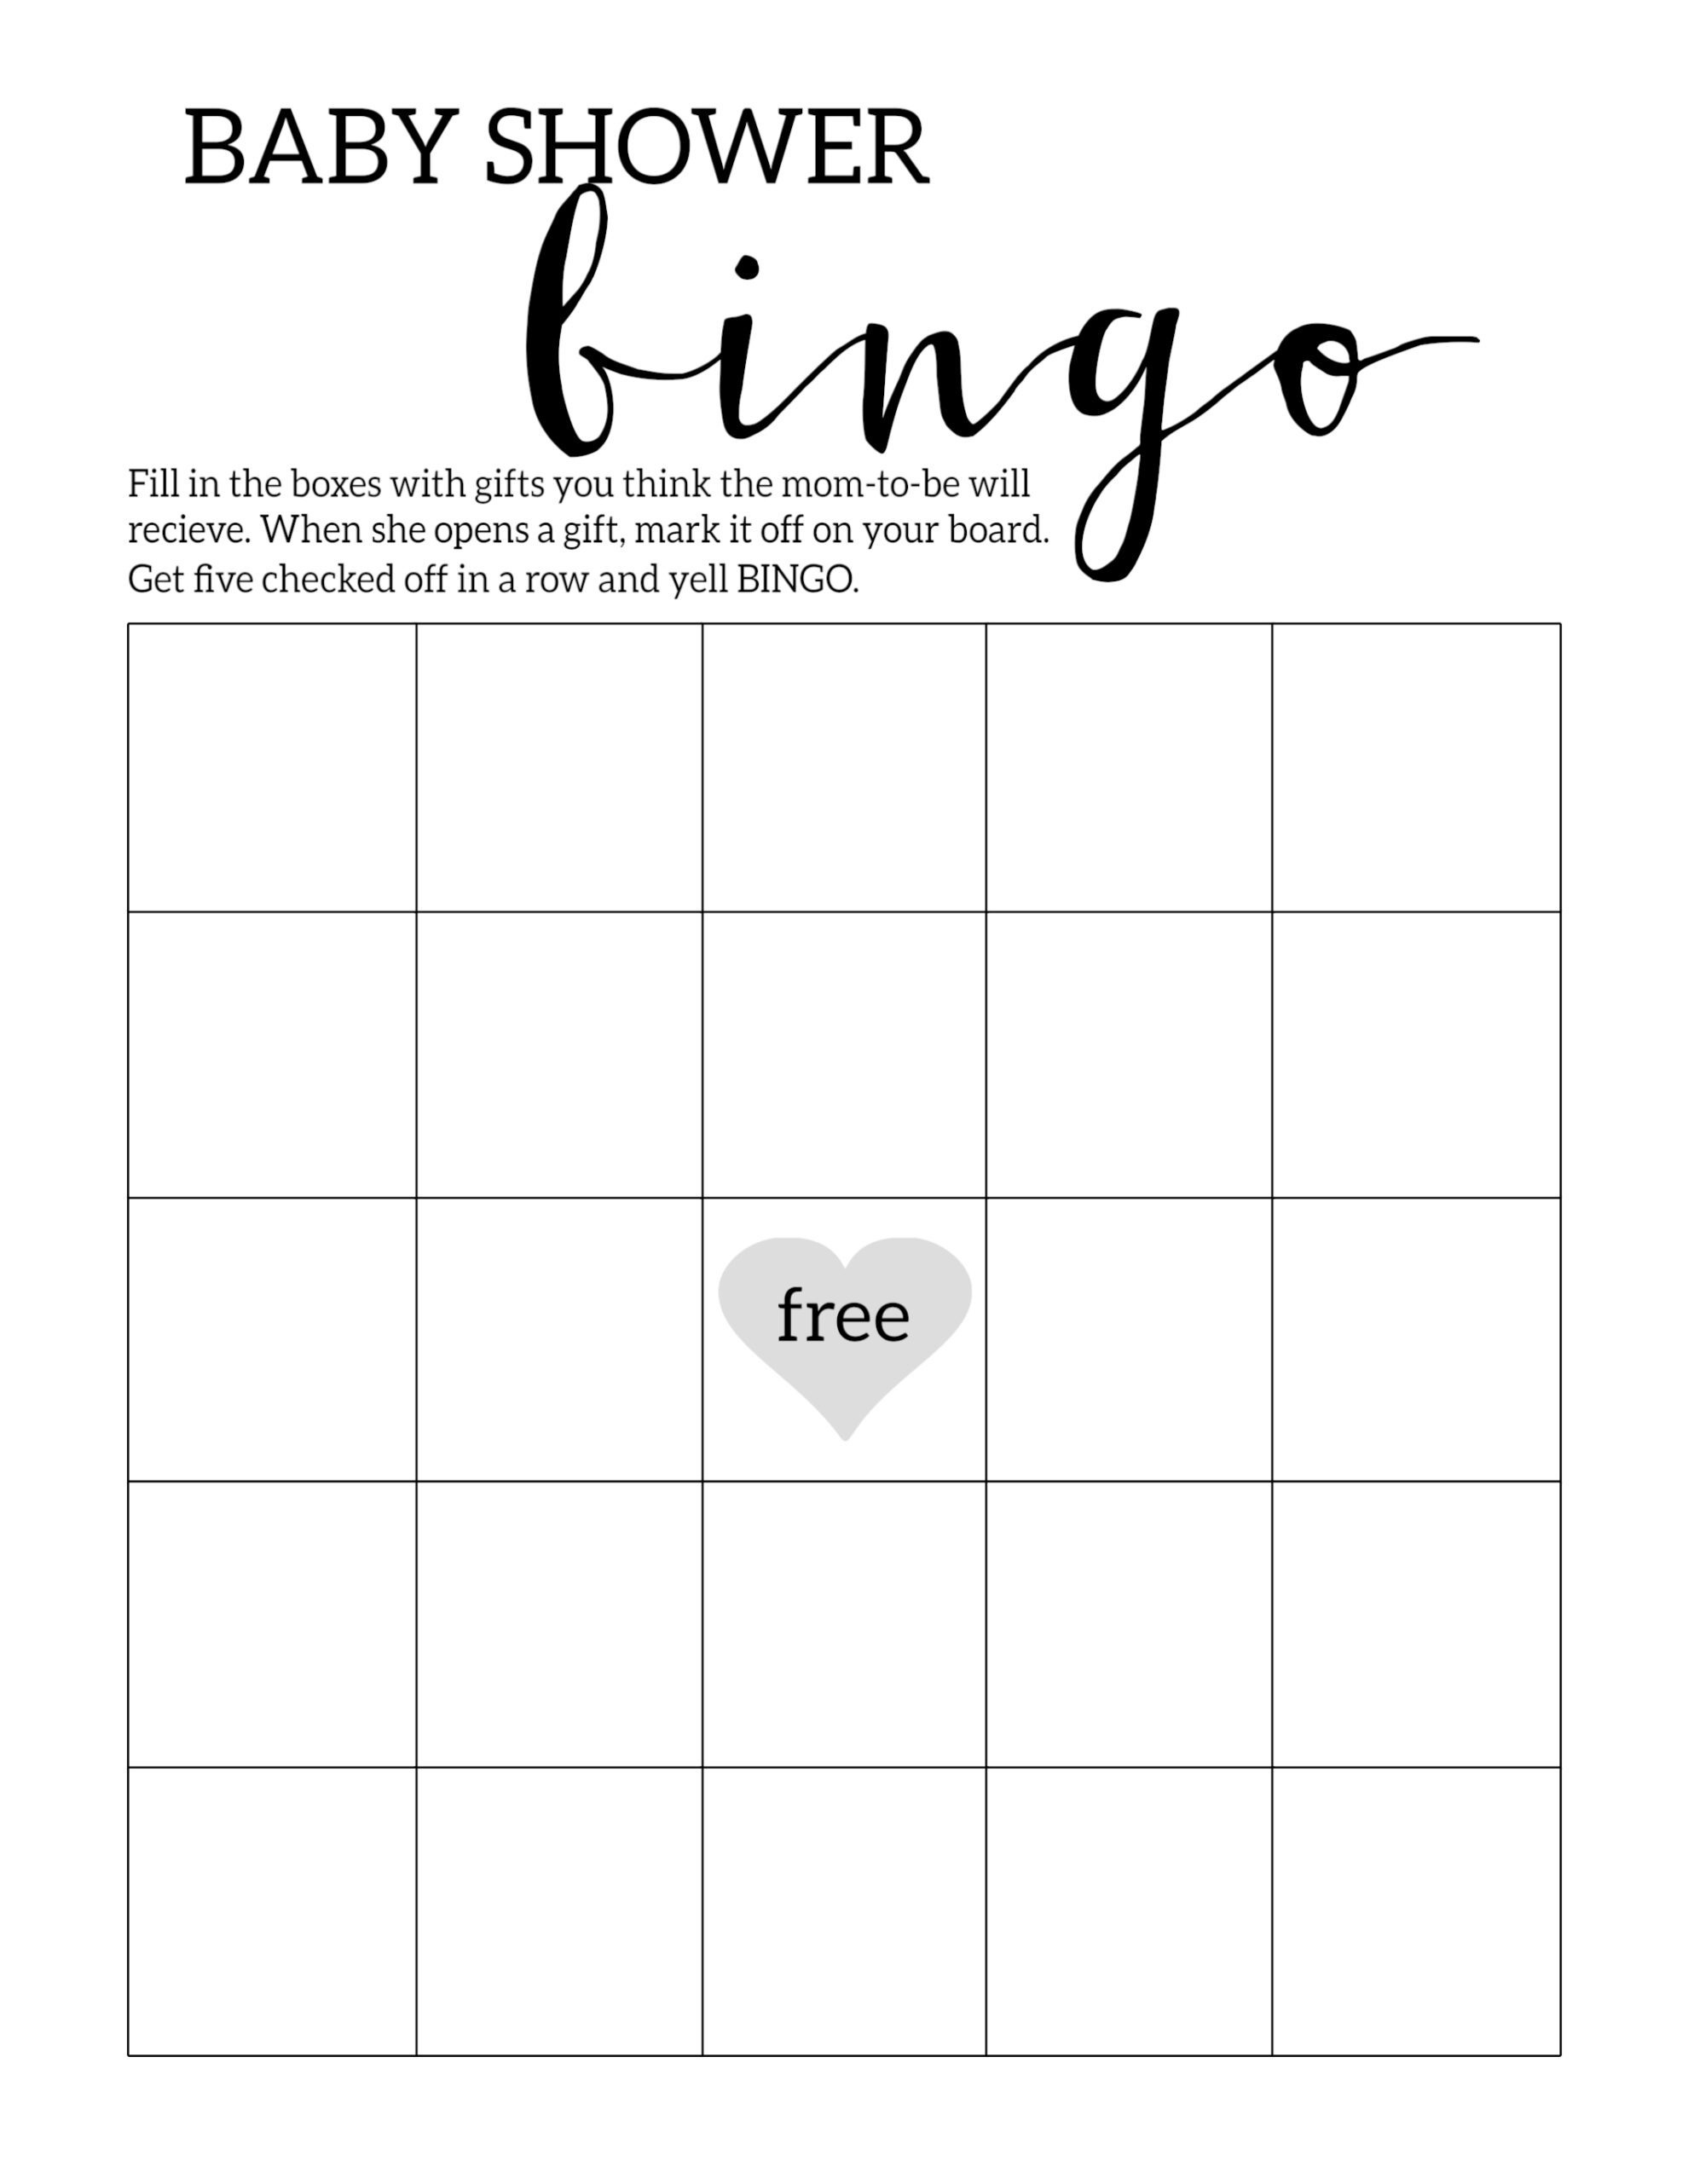 Baby Shower Bingo Printable Cards Template - Paper Trail Design - Baby Shower Bingo Template Free Printable